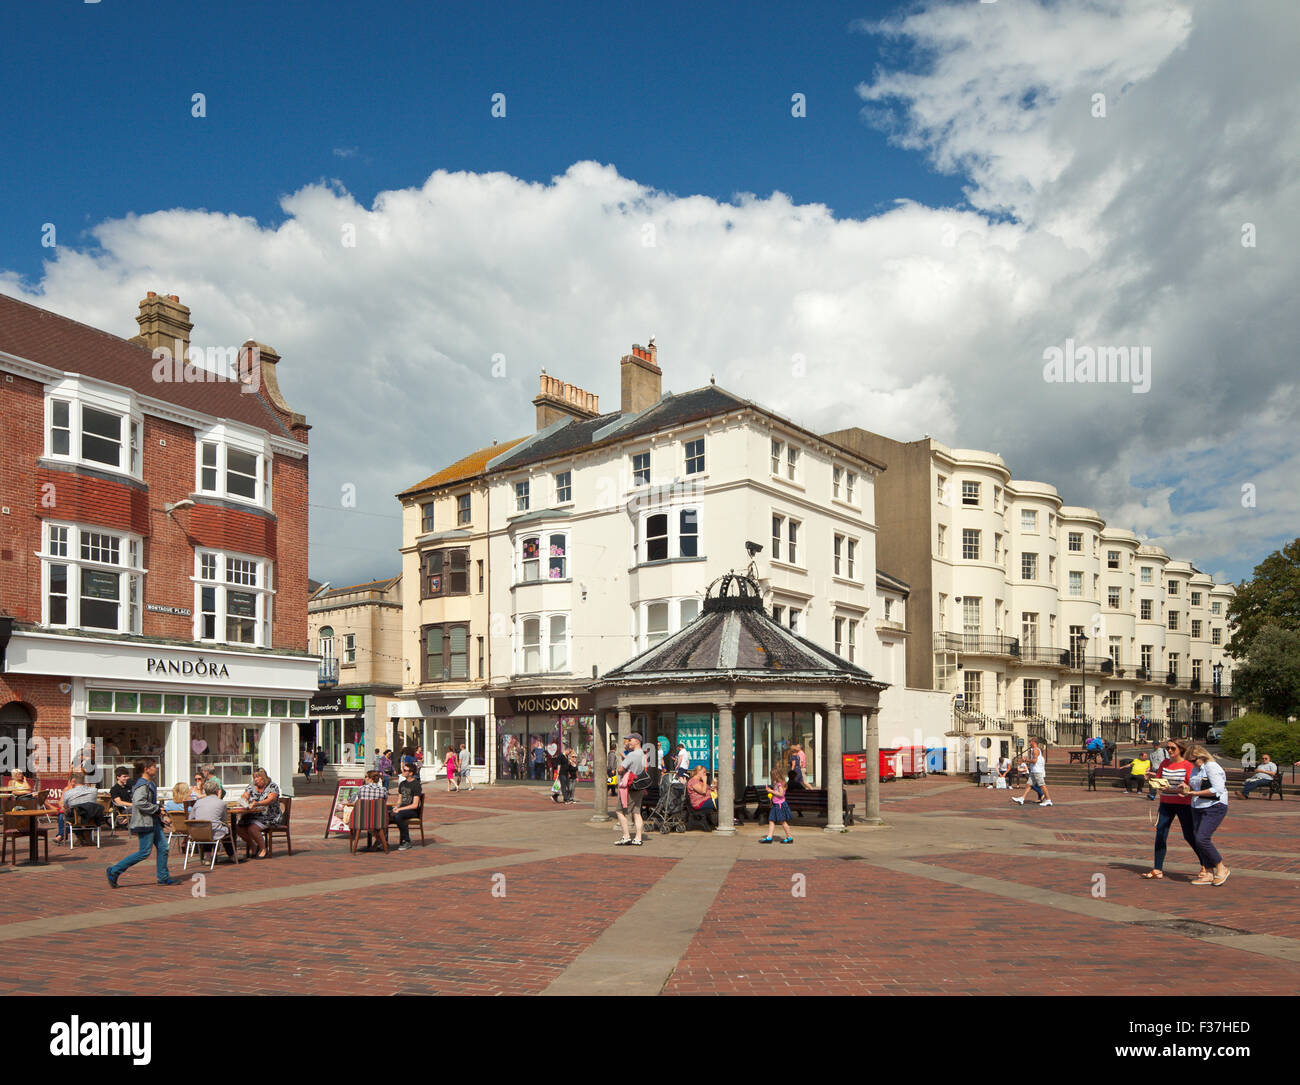 Montague Place Worthing. - Stock Image